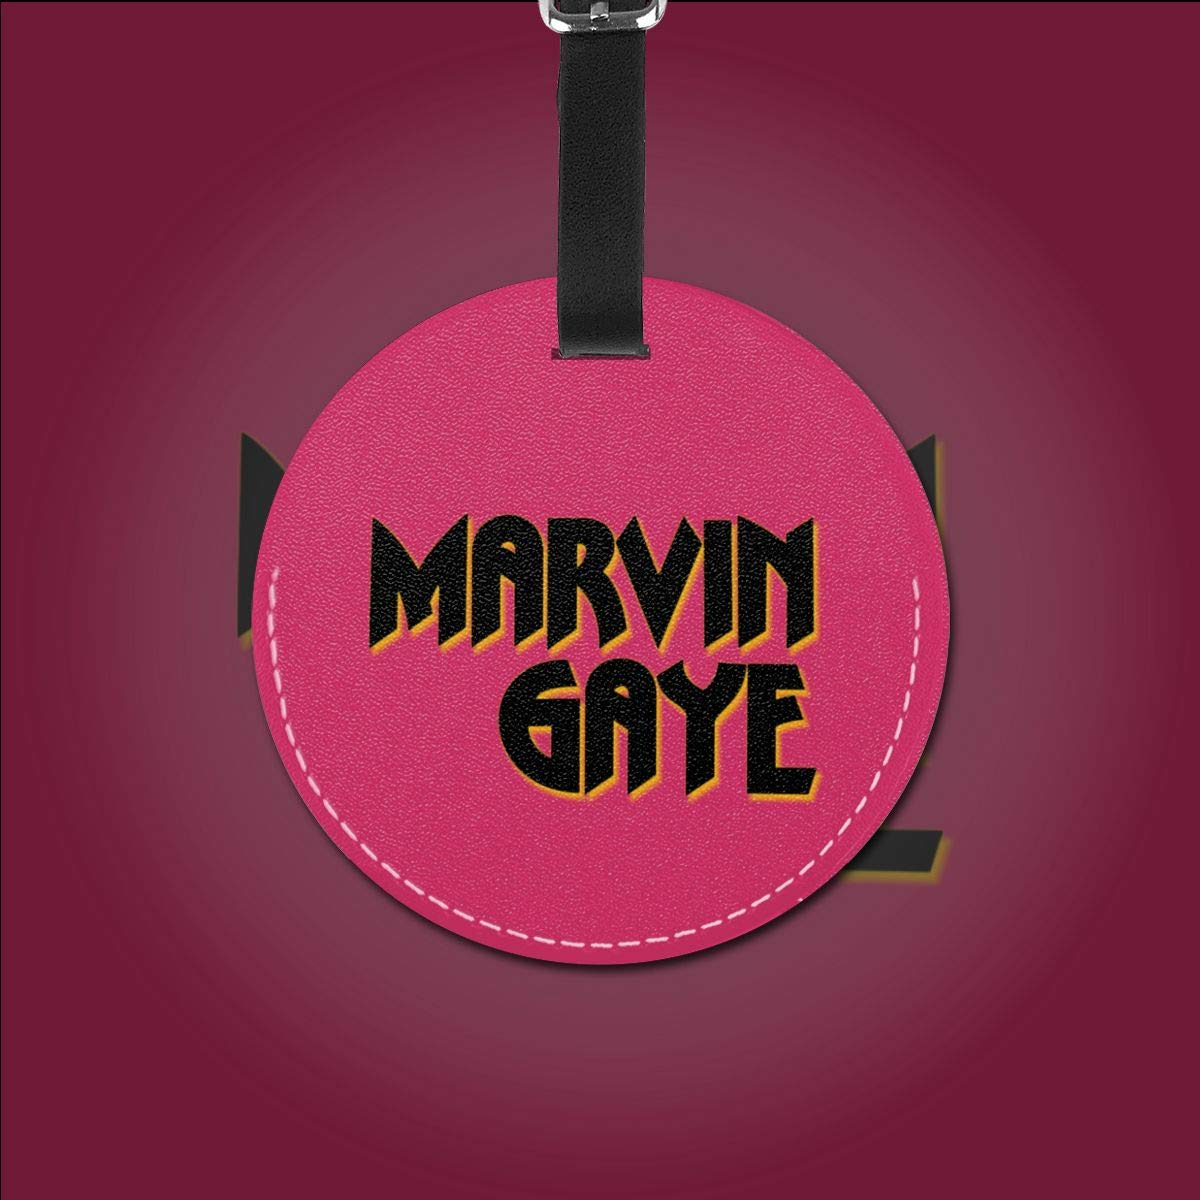 LIKUNMING Marvin Gaye Travel Luggage Tags Travel Suitcase Bag Labels Checked Baggage Tags